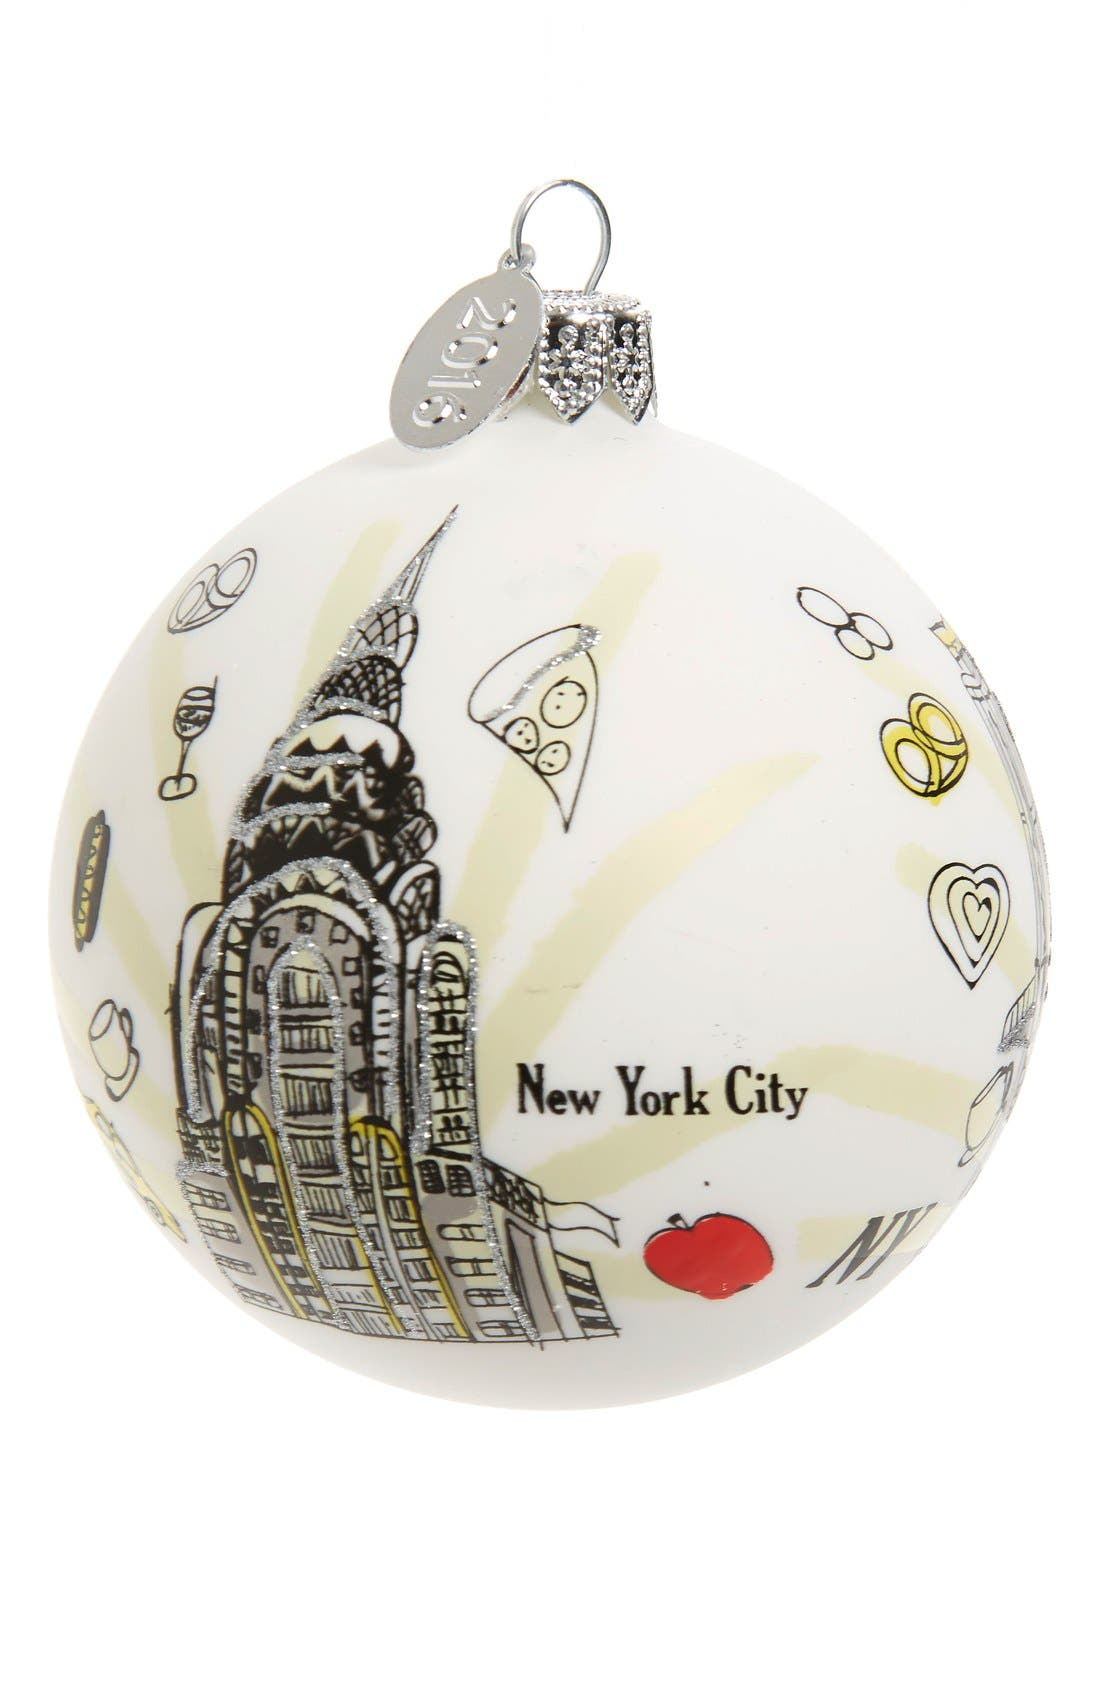 'Travel' Handblown Glass Ball Ornament,                         Main,                         color, WHITE NEW YORK CITY